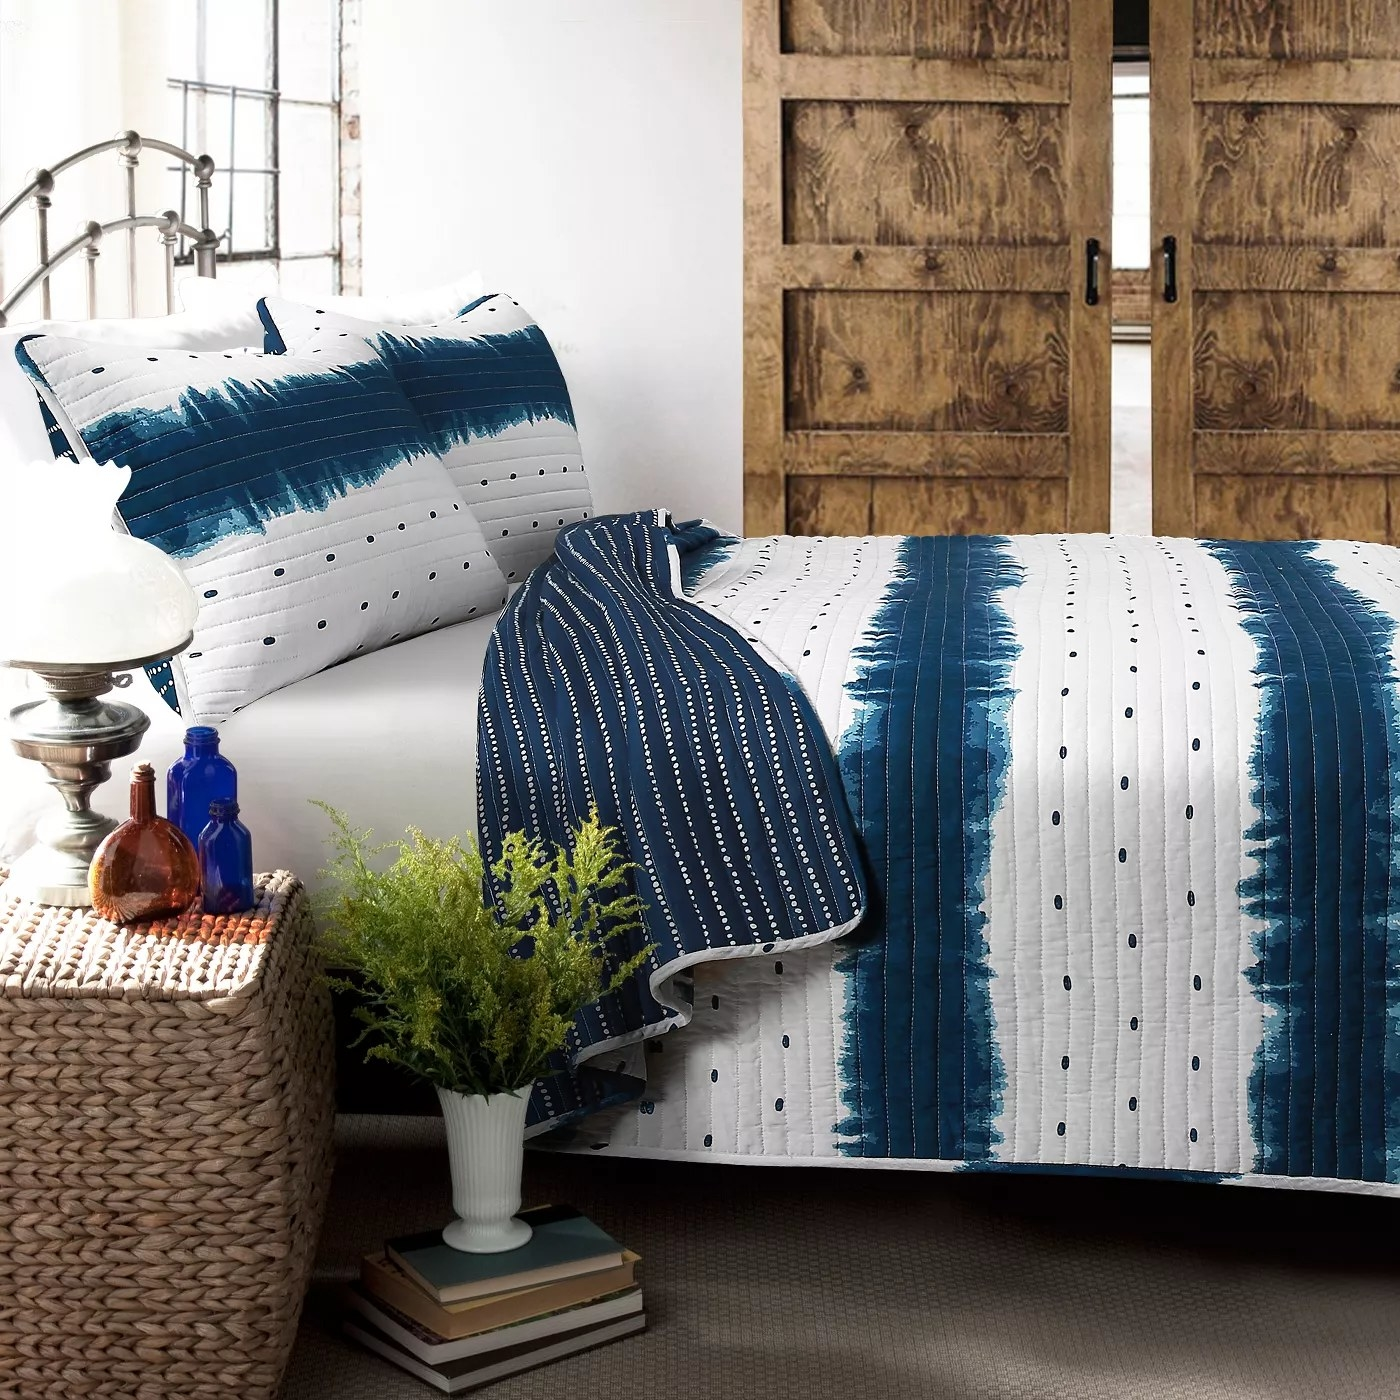 The double-sided comforter and matching pillows